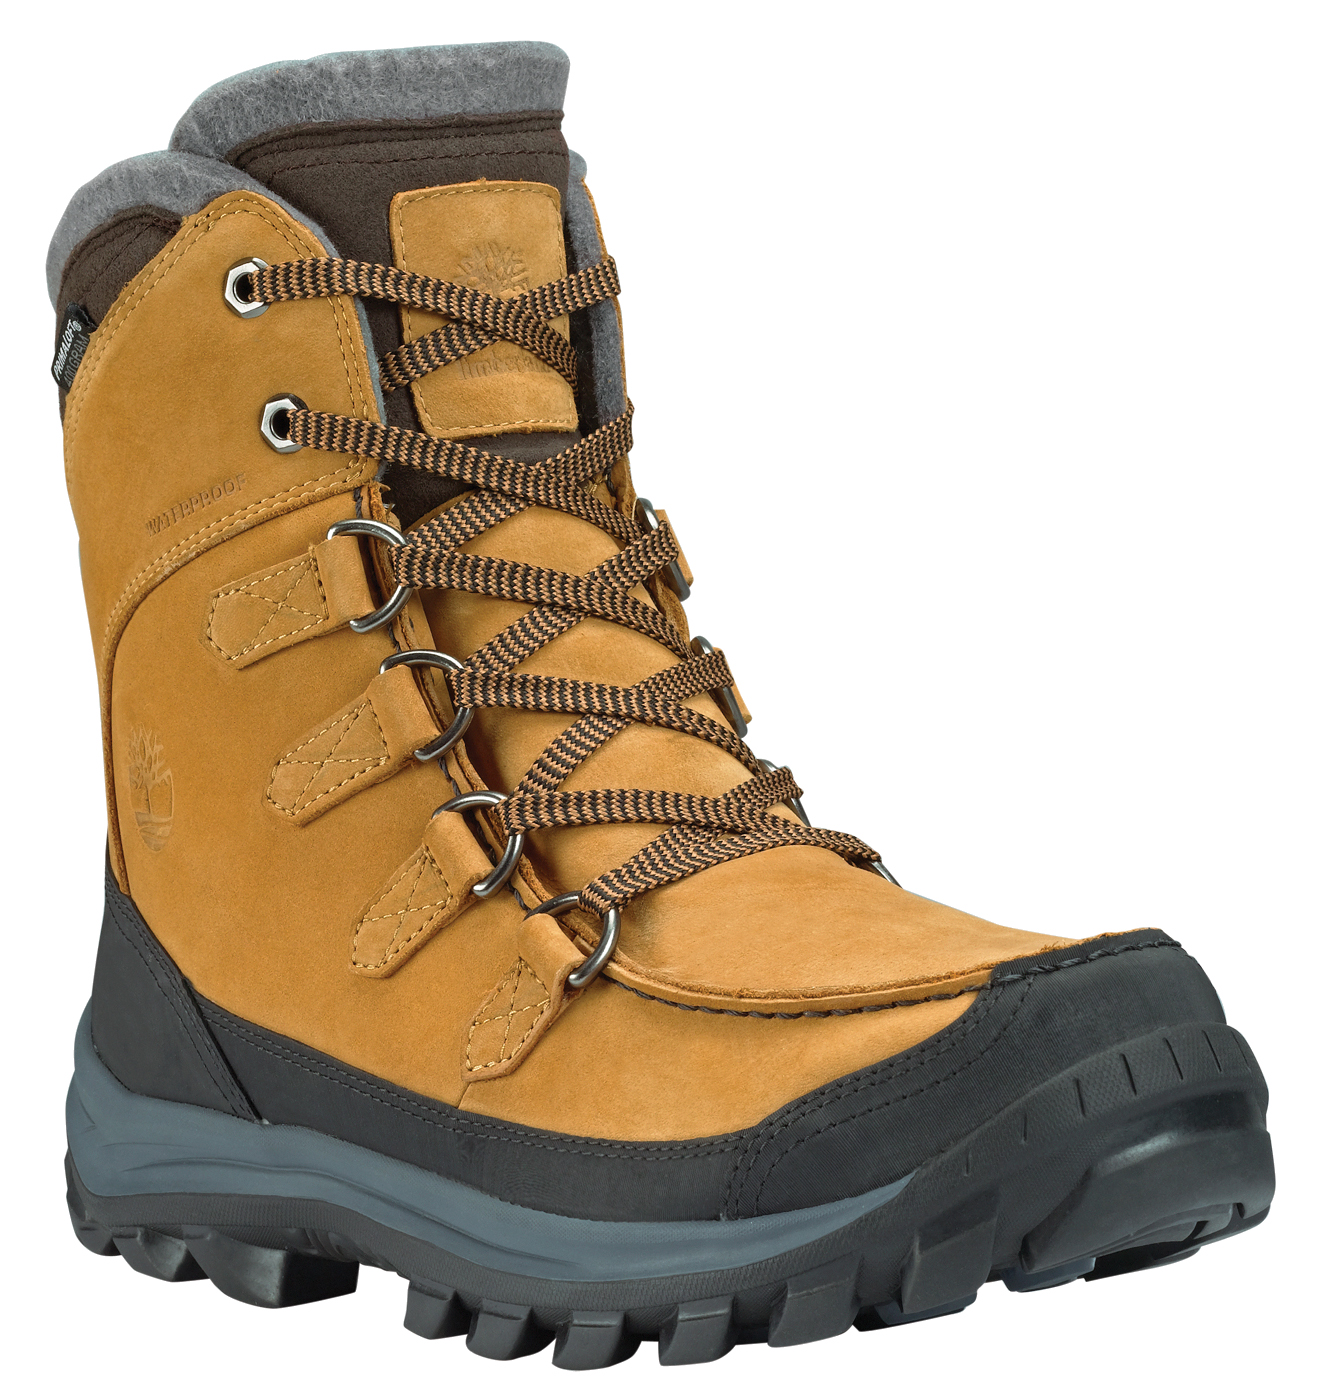 e907e51a8f8 Timberland Chillberg Tall Boots - Men's